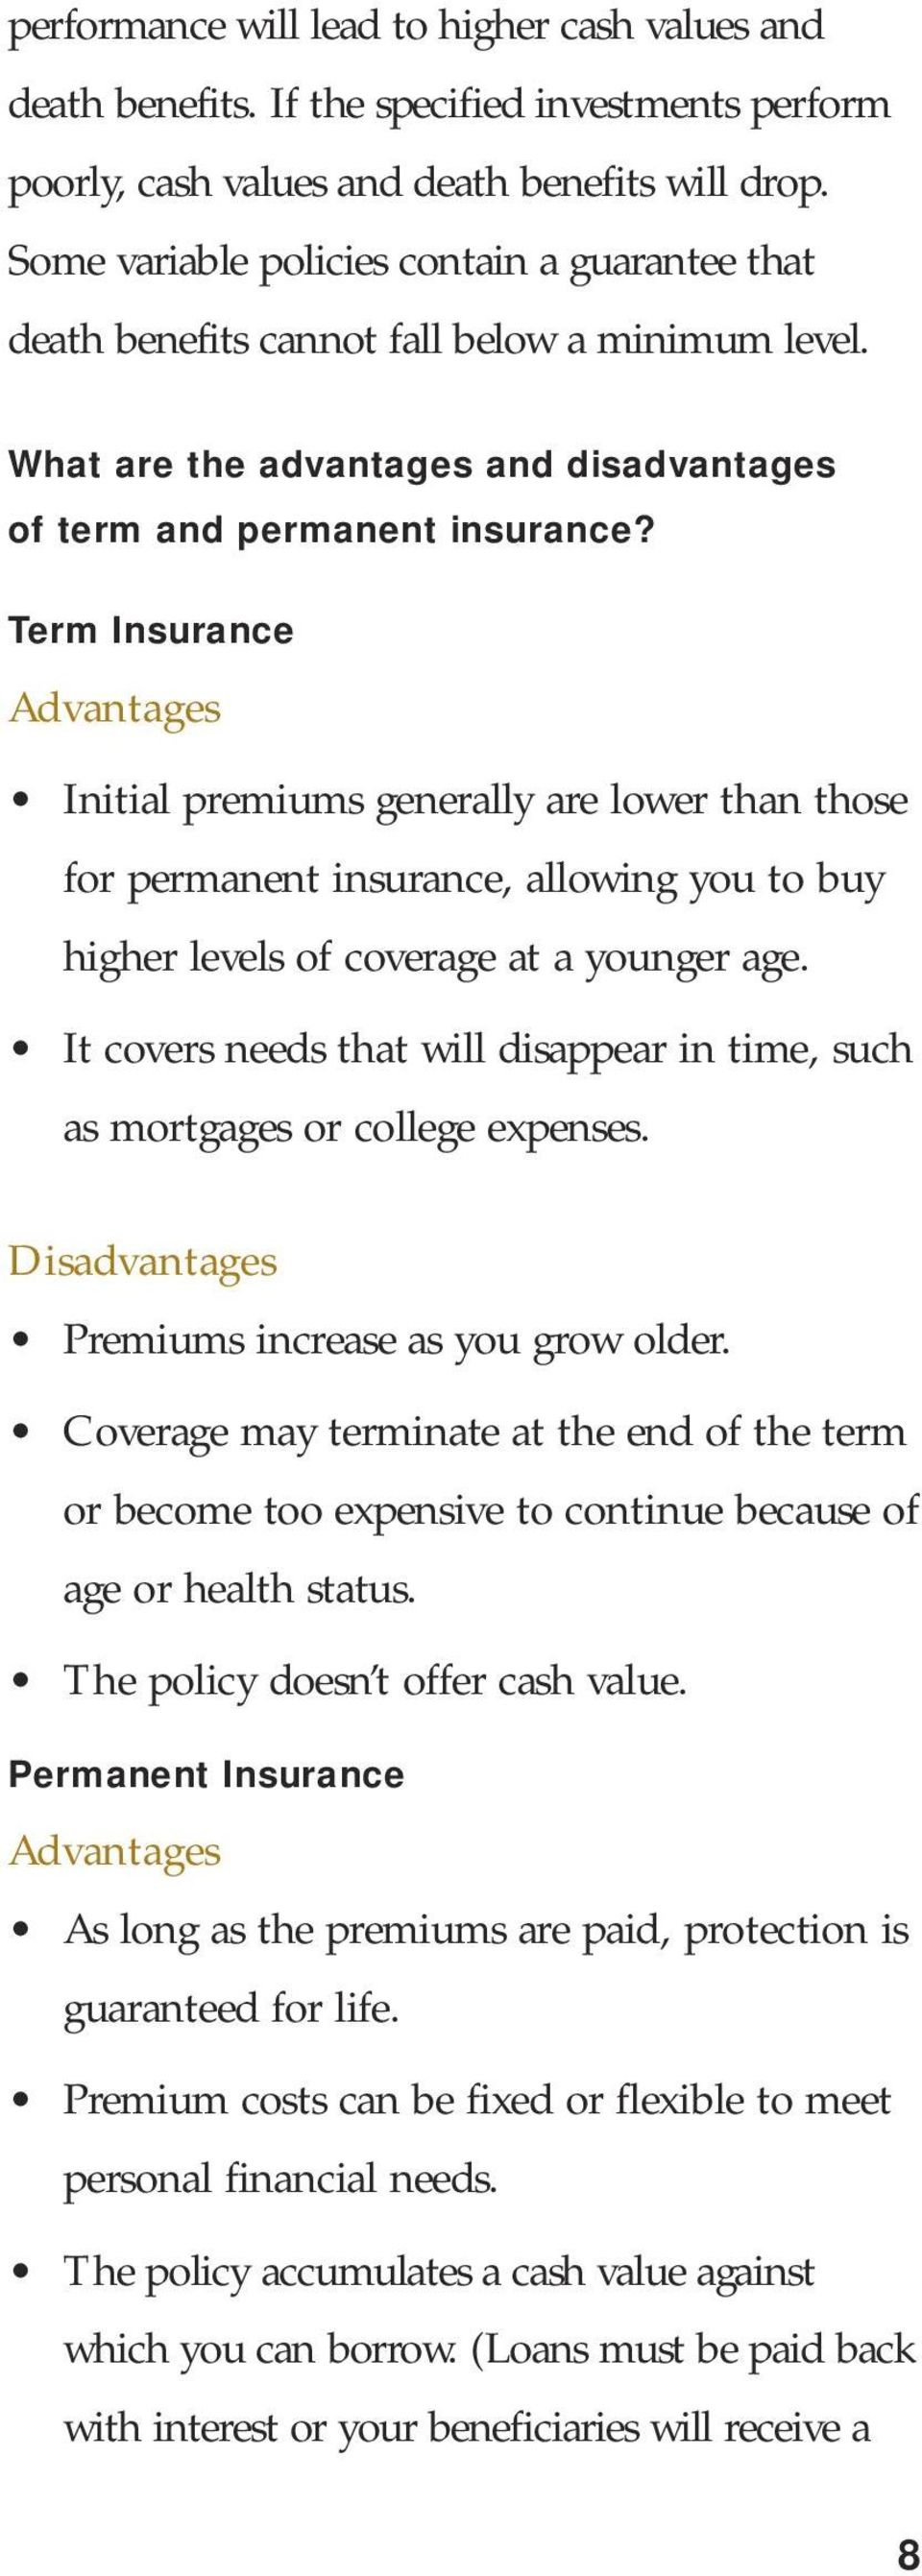 Term Insurance Advantages Initial premiums generally are lower than those for permanent insurance, allowing you to buy higher levels of coverage at a younger age.